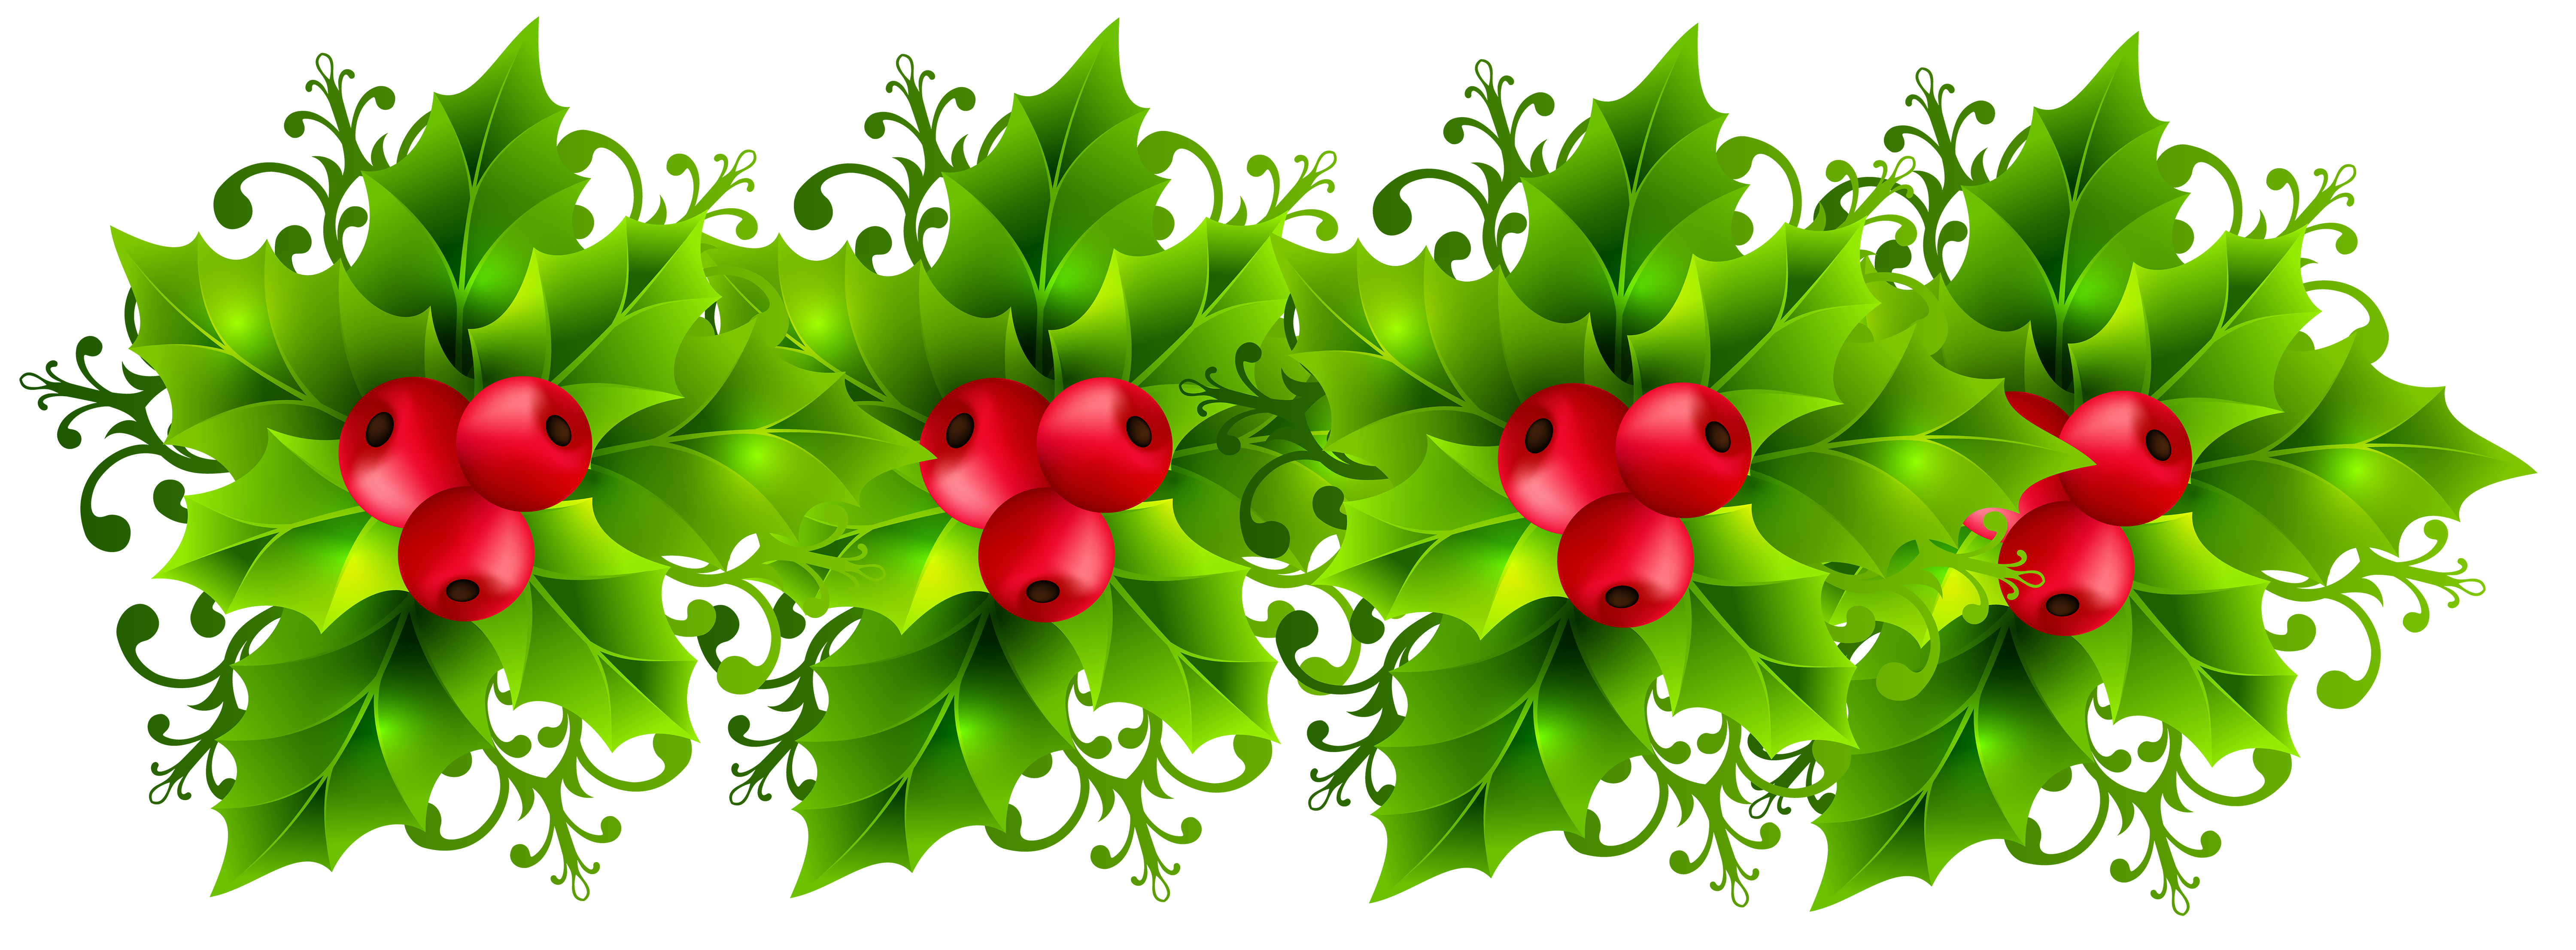 Christmas Holly Garland Transparent PNG Clip Art Image.